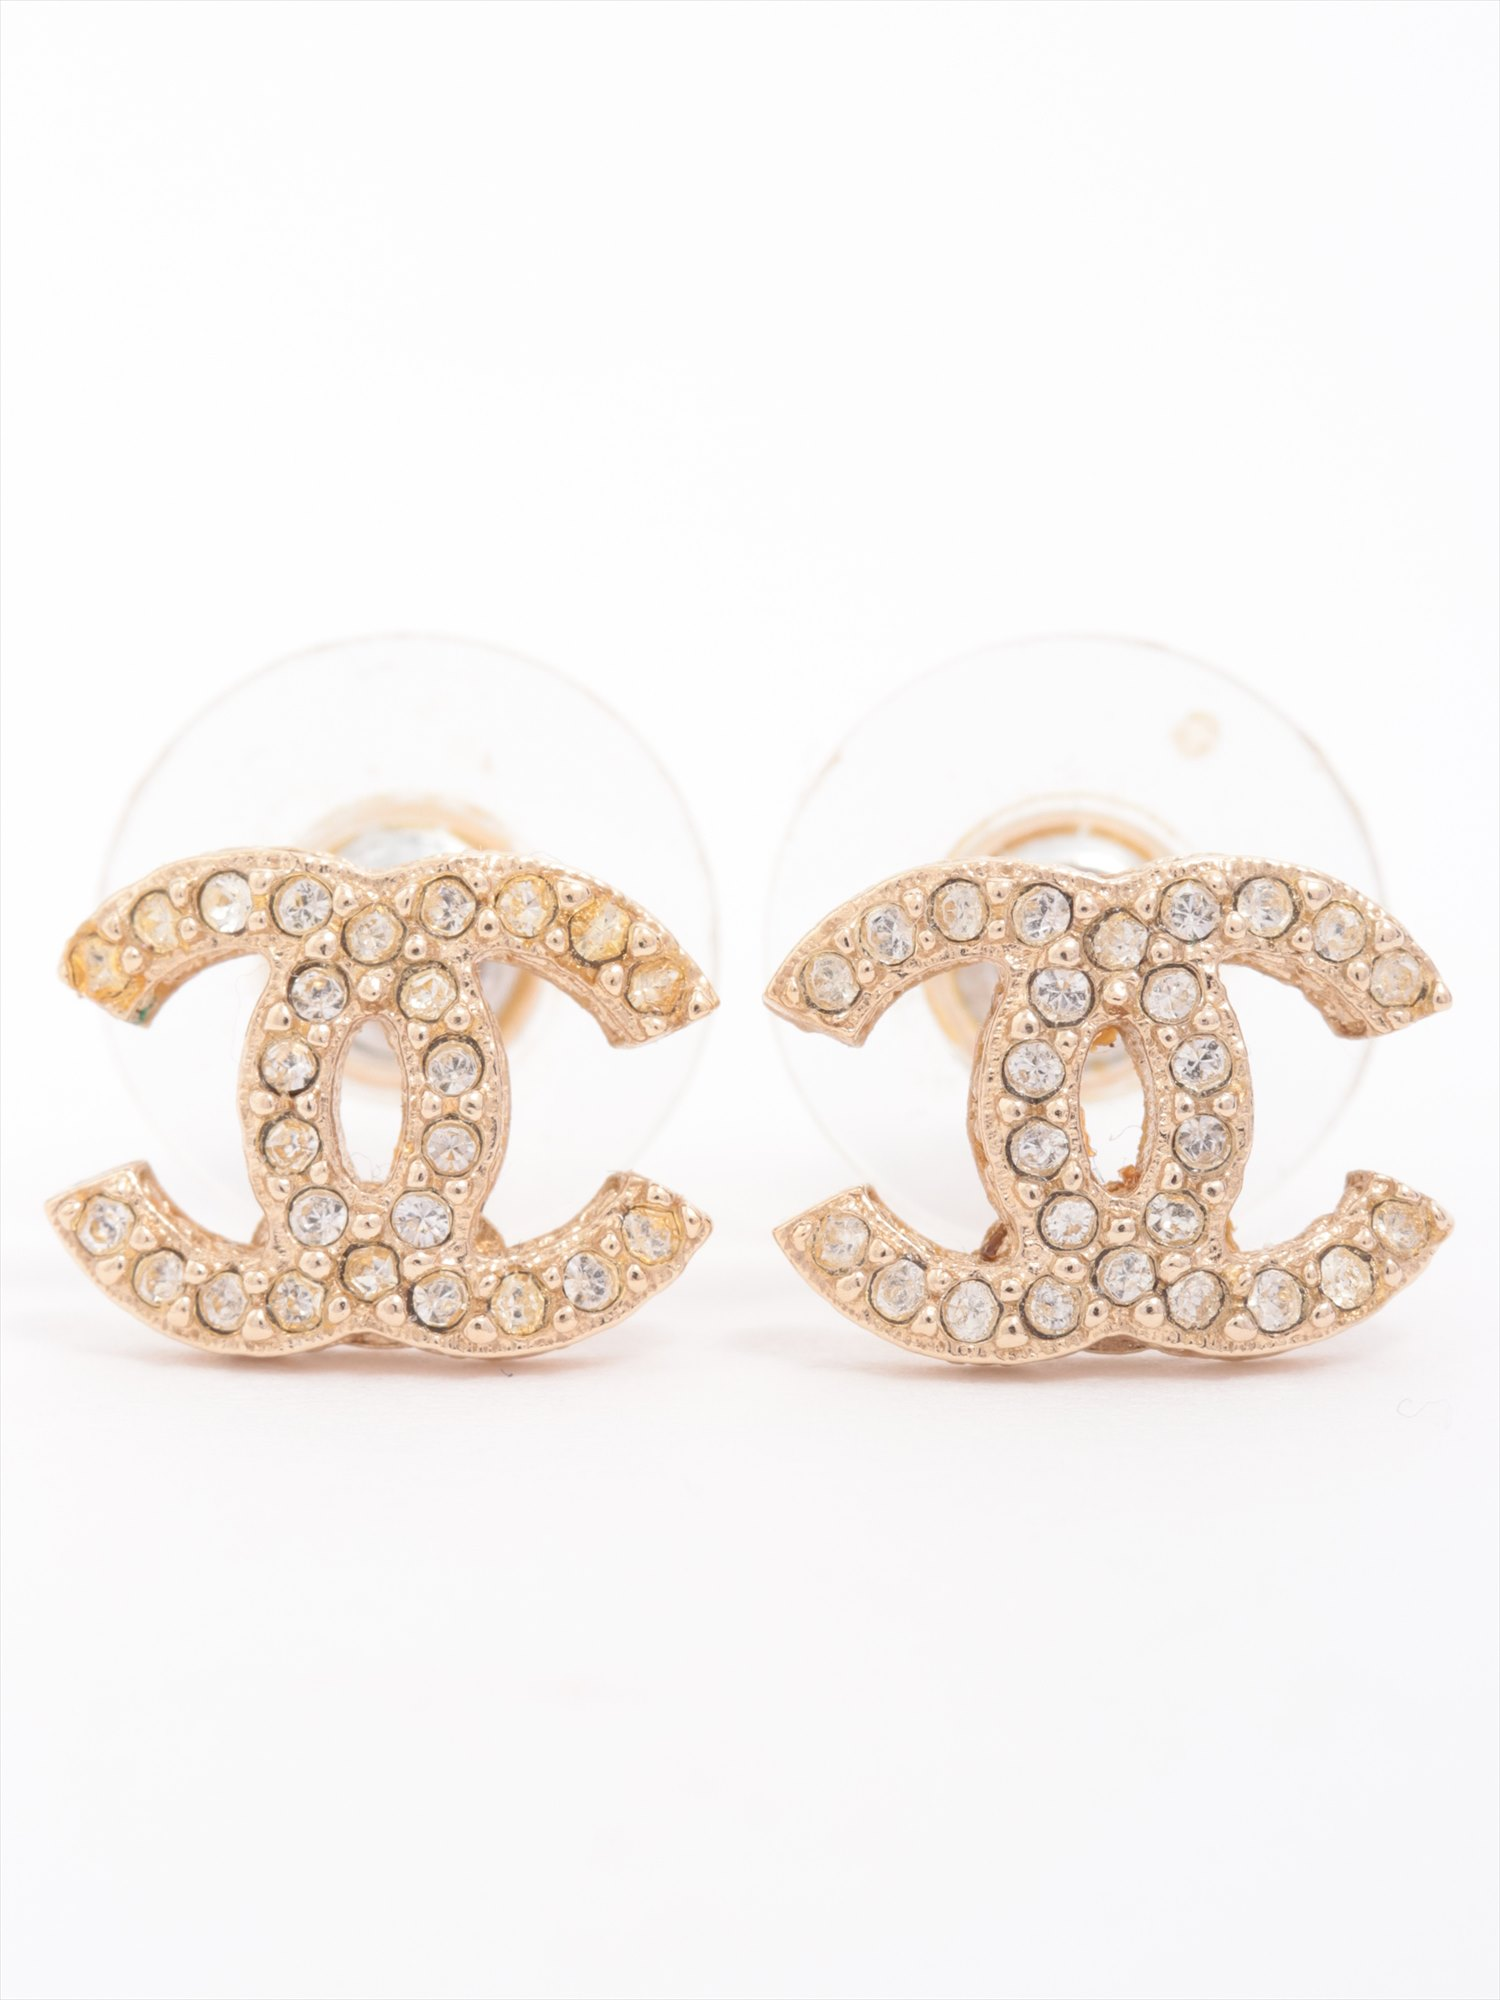 [Used goods] Chanel Coco mark earrings (for both ears) GP Gold rhinestone F16B